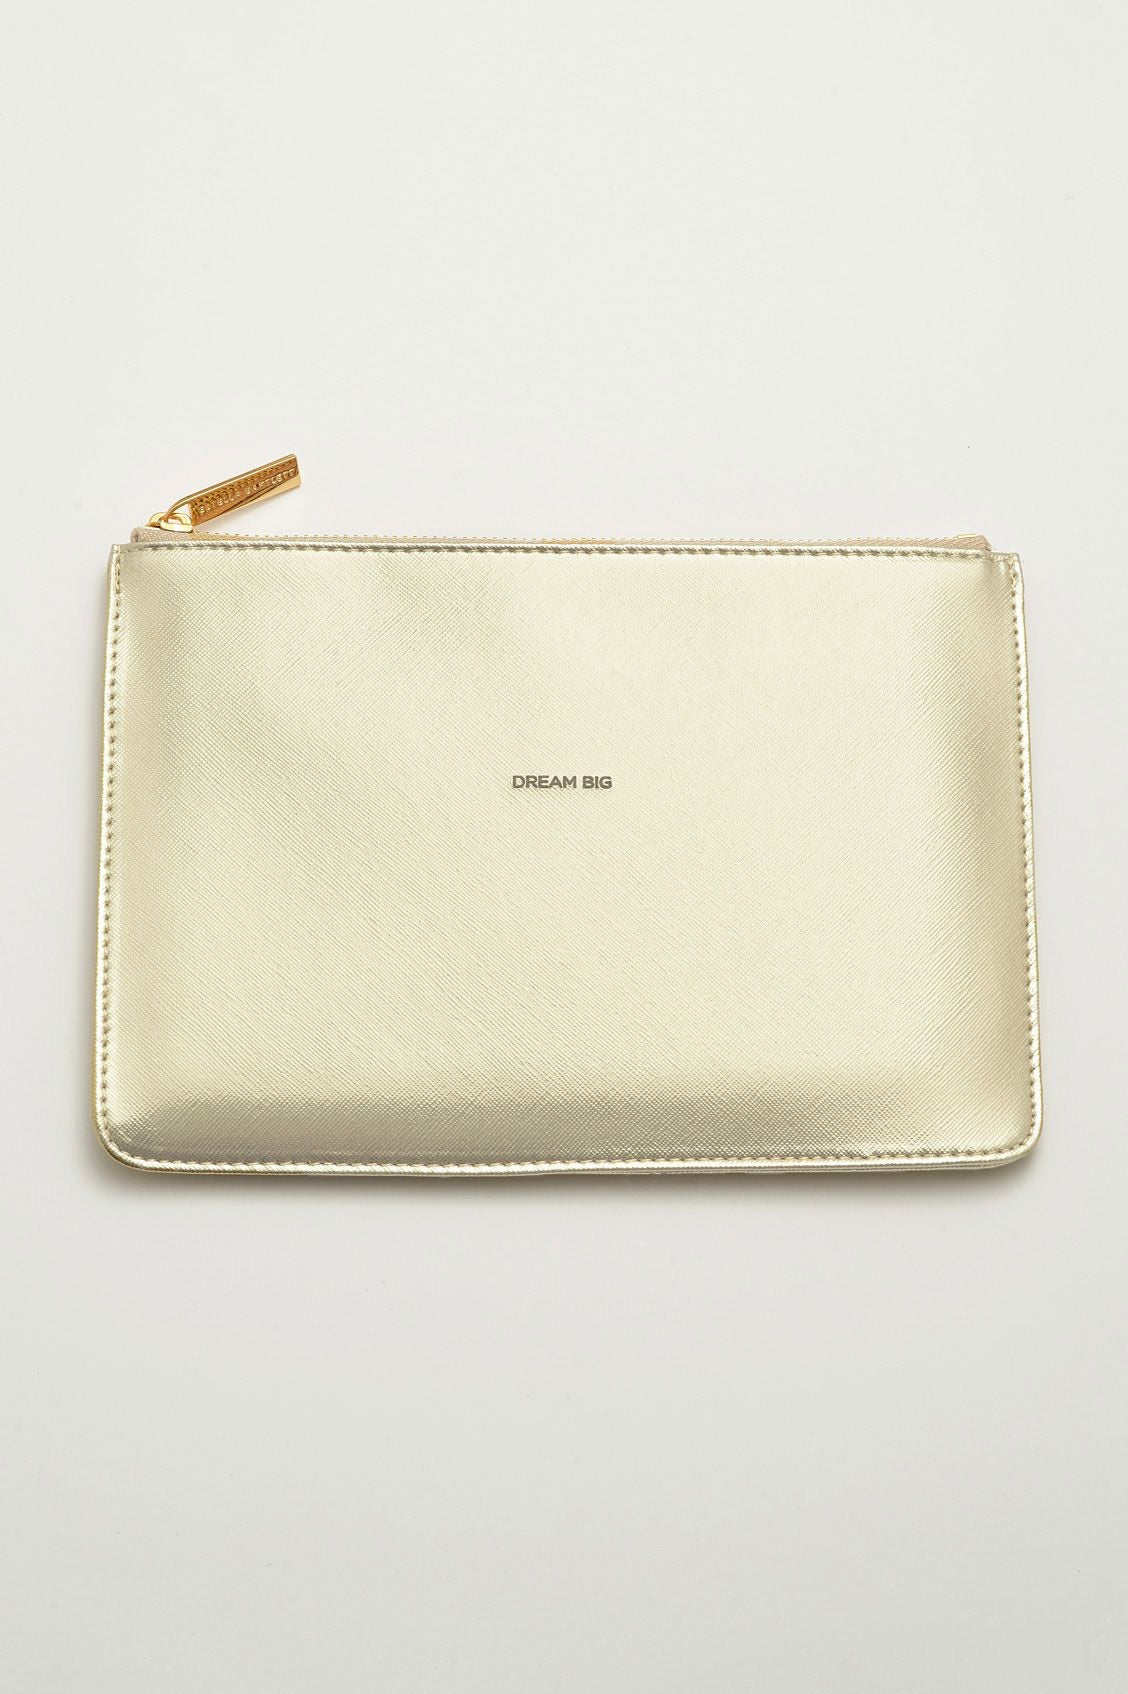 Medium Pouch - Gold 'Dream Big'